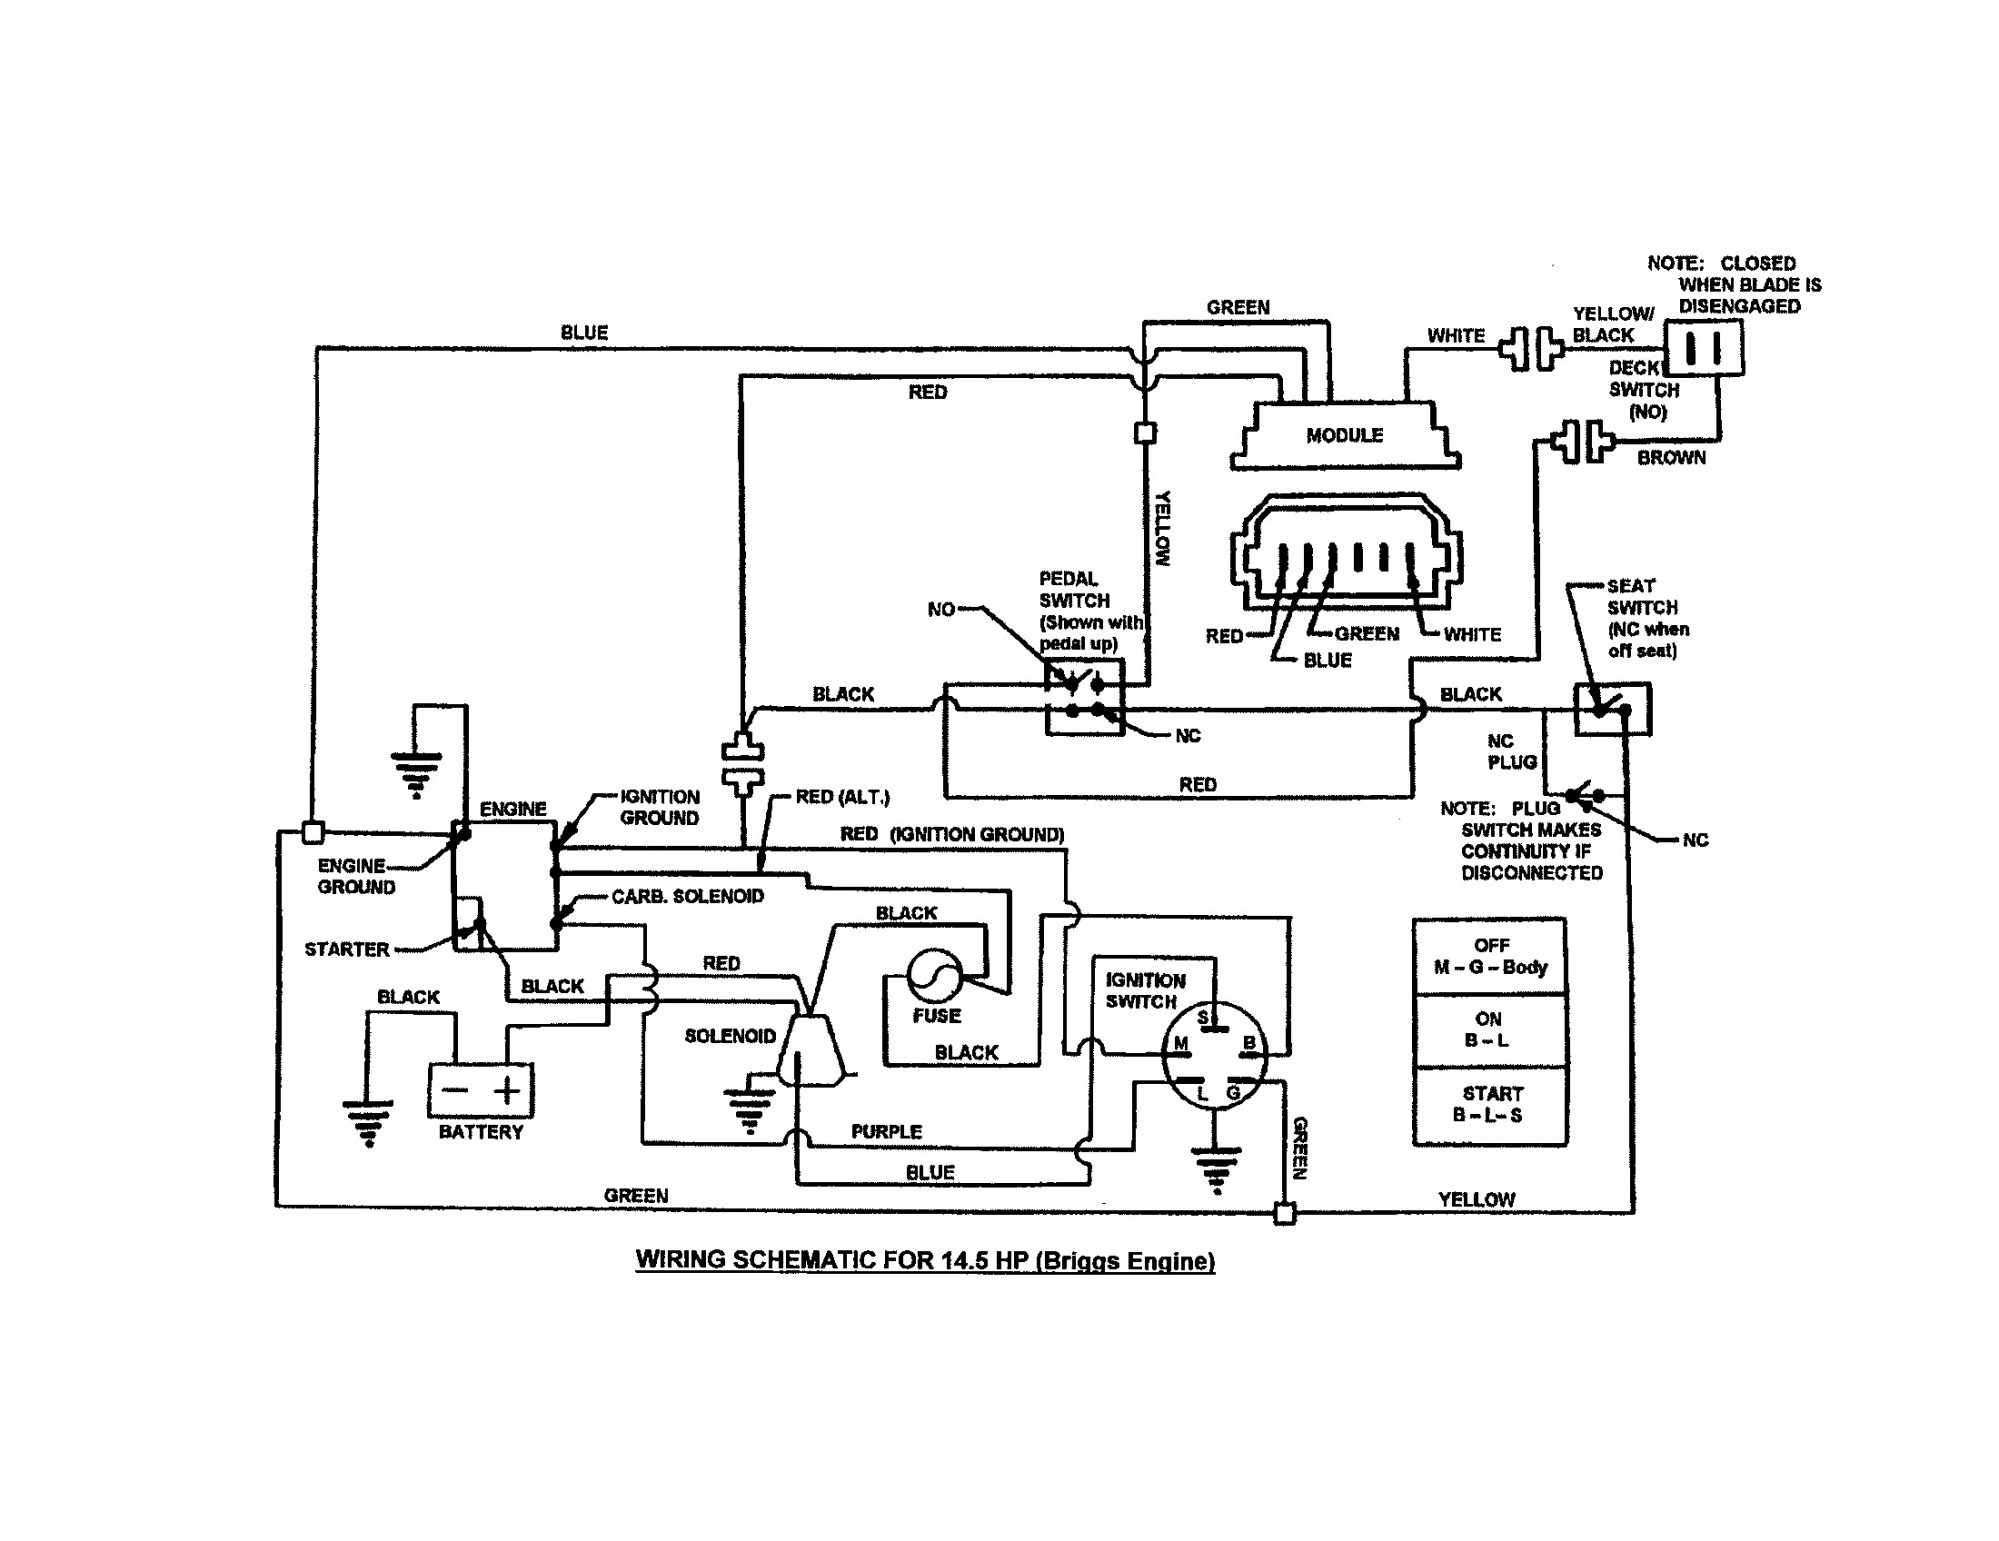 hight resolution of yardman solenoid wiring diagram manual e bookmtd fuses diagram wiring diagram databasewiring diagram for murray riding